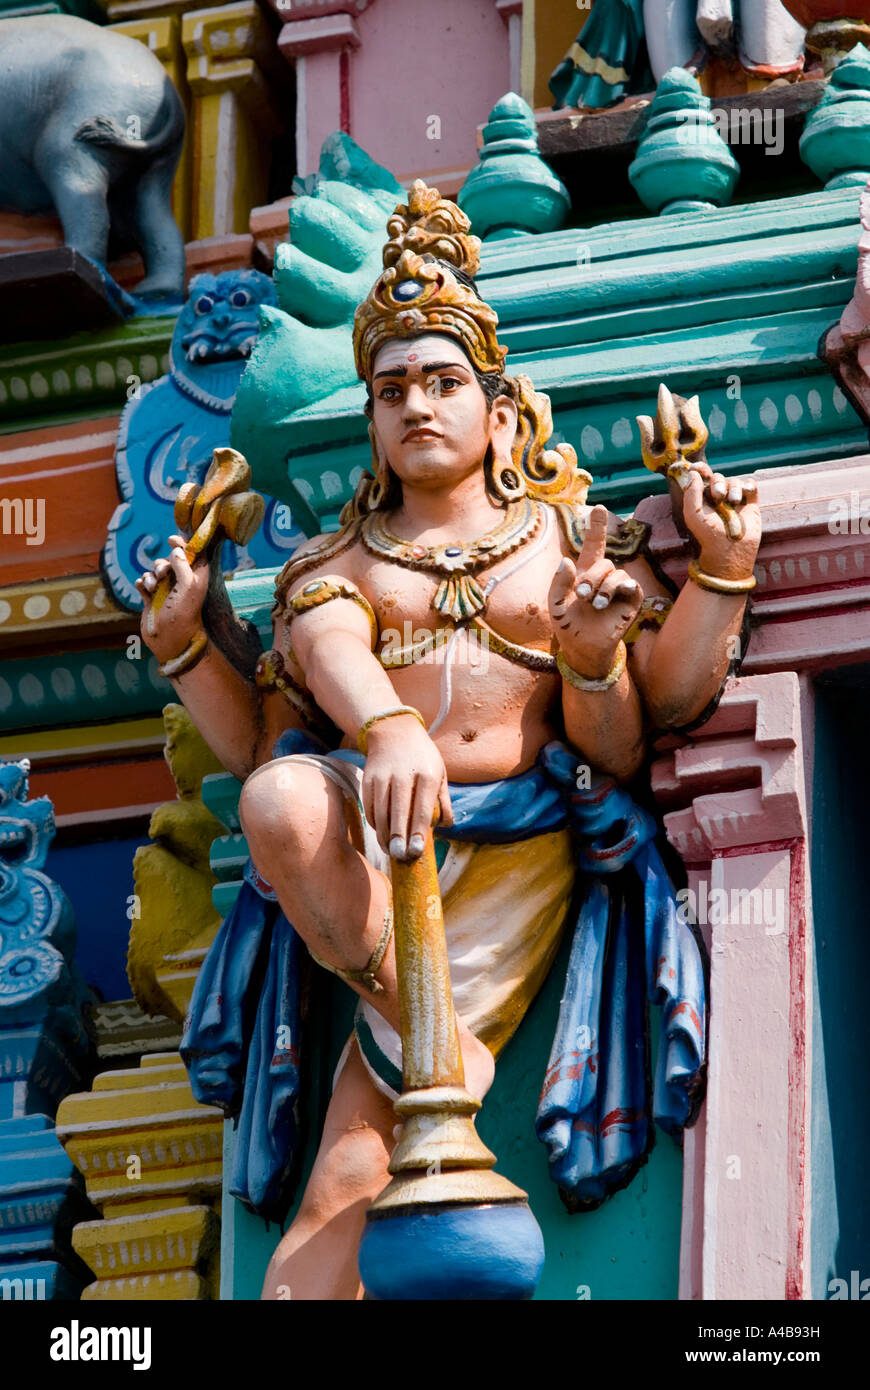 Stock image of Kapaleeswarar Temple in Chennai India with statue of Lord Shiva - Stock Image